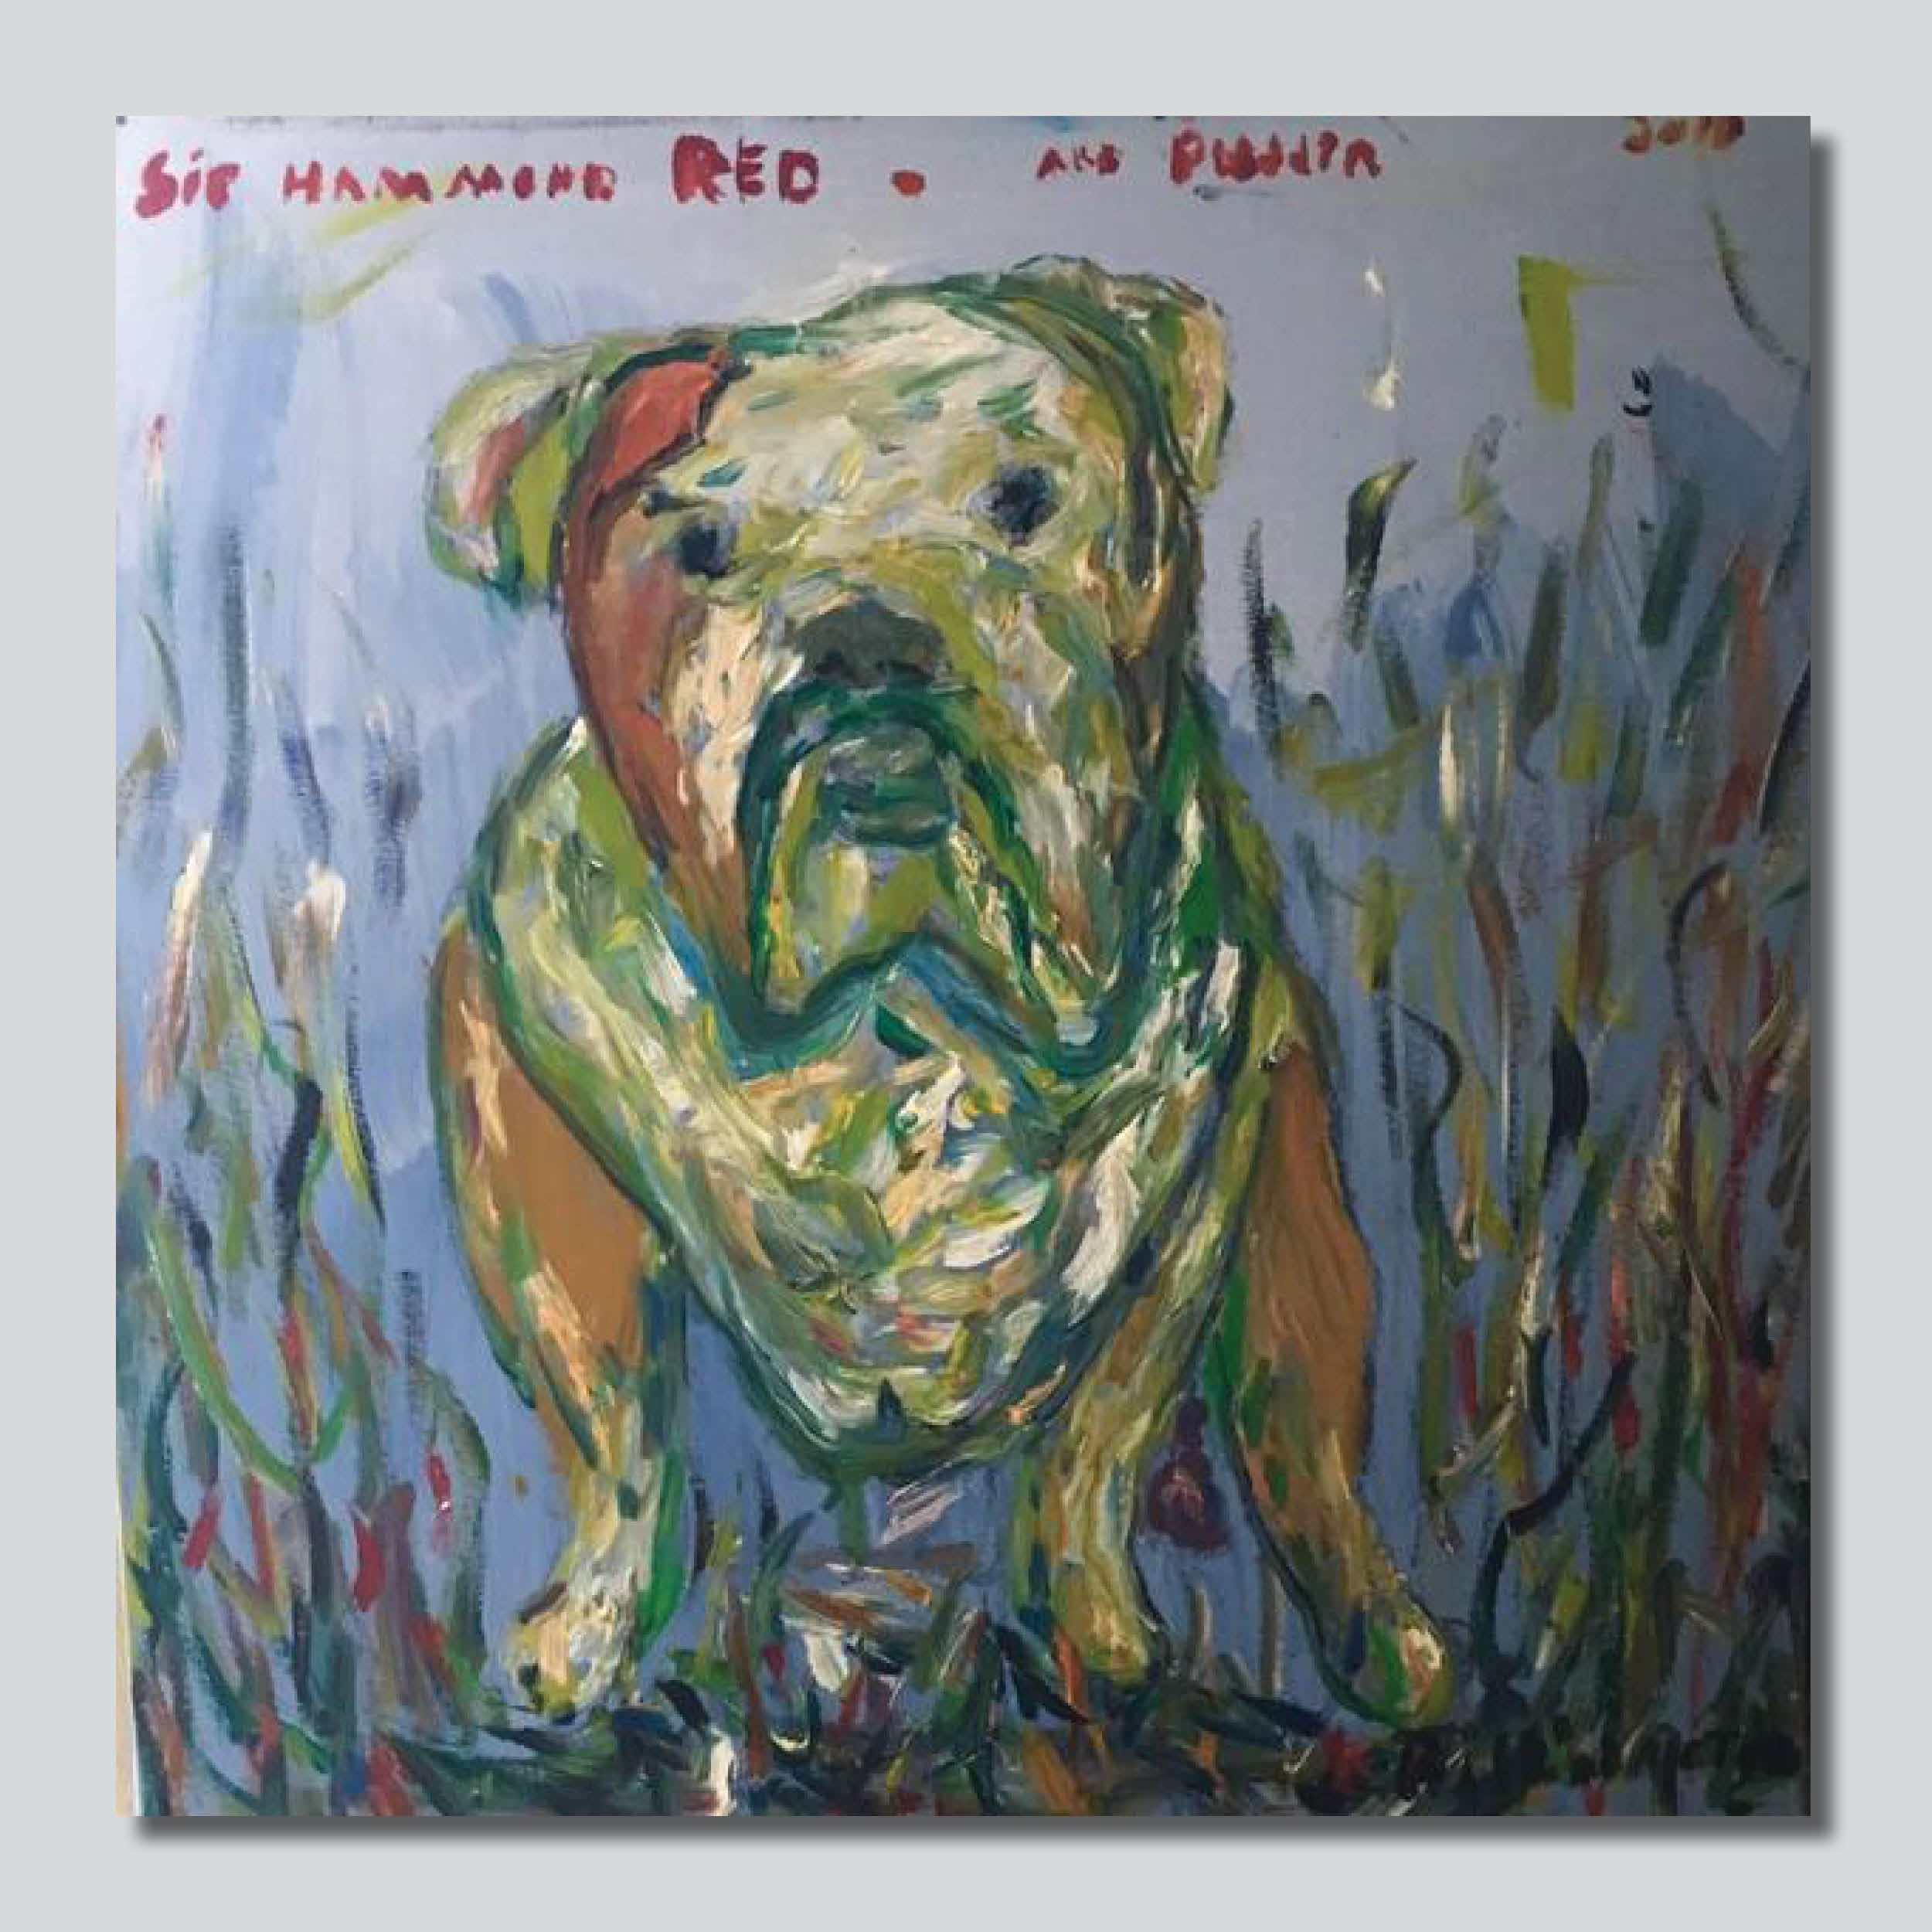 """Original Art"" Sir Hammer Red Bulldog 20"" x 20"" Oil On Canvas"